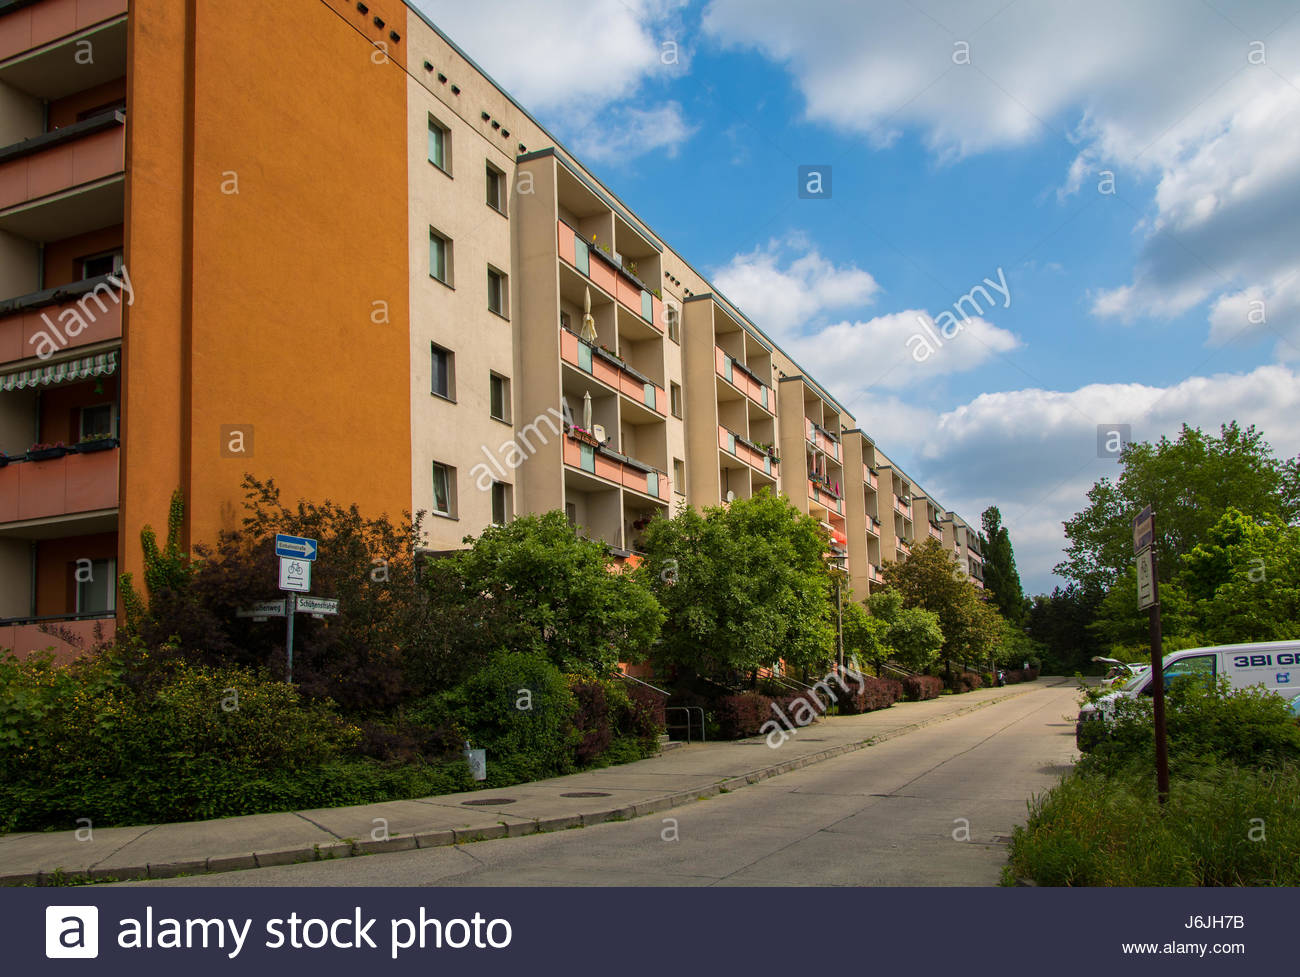 Rent for dwellings stock photos rent for dwellings stock for Fuggerei germany houses for sale